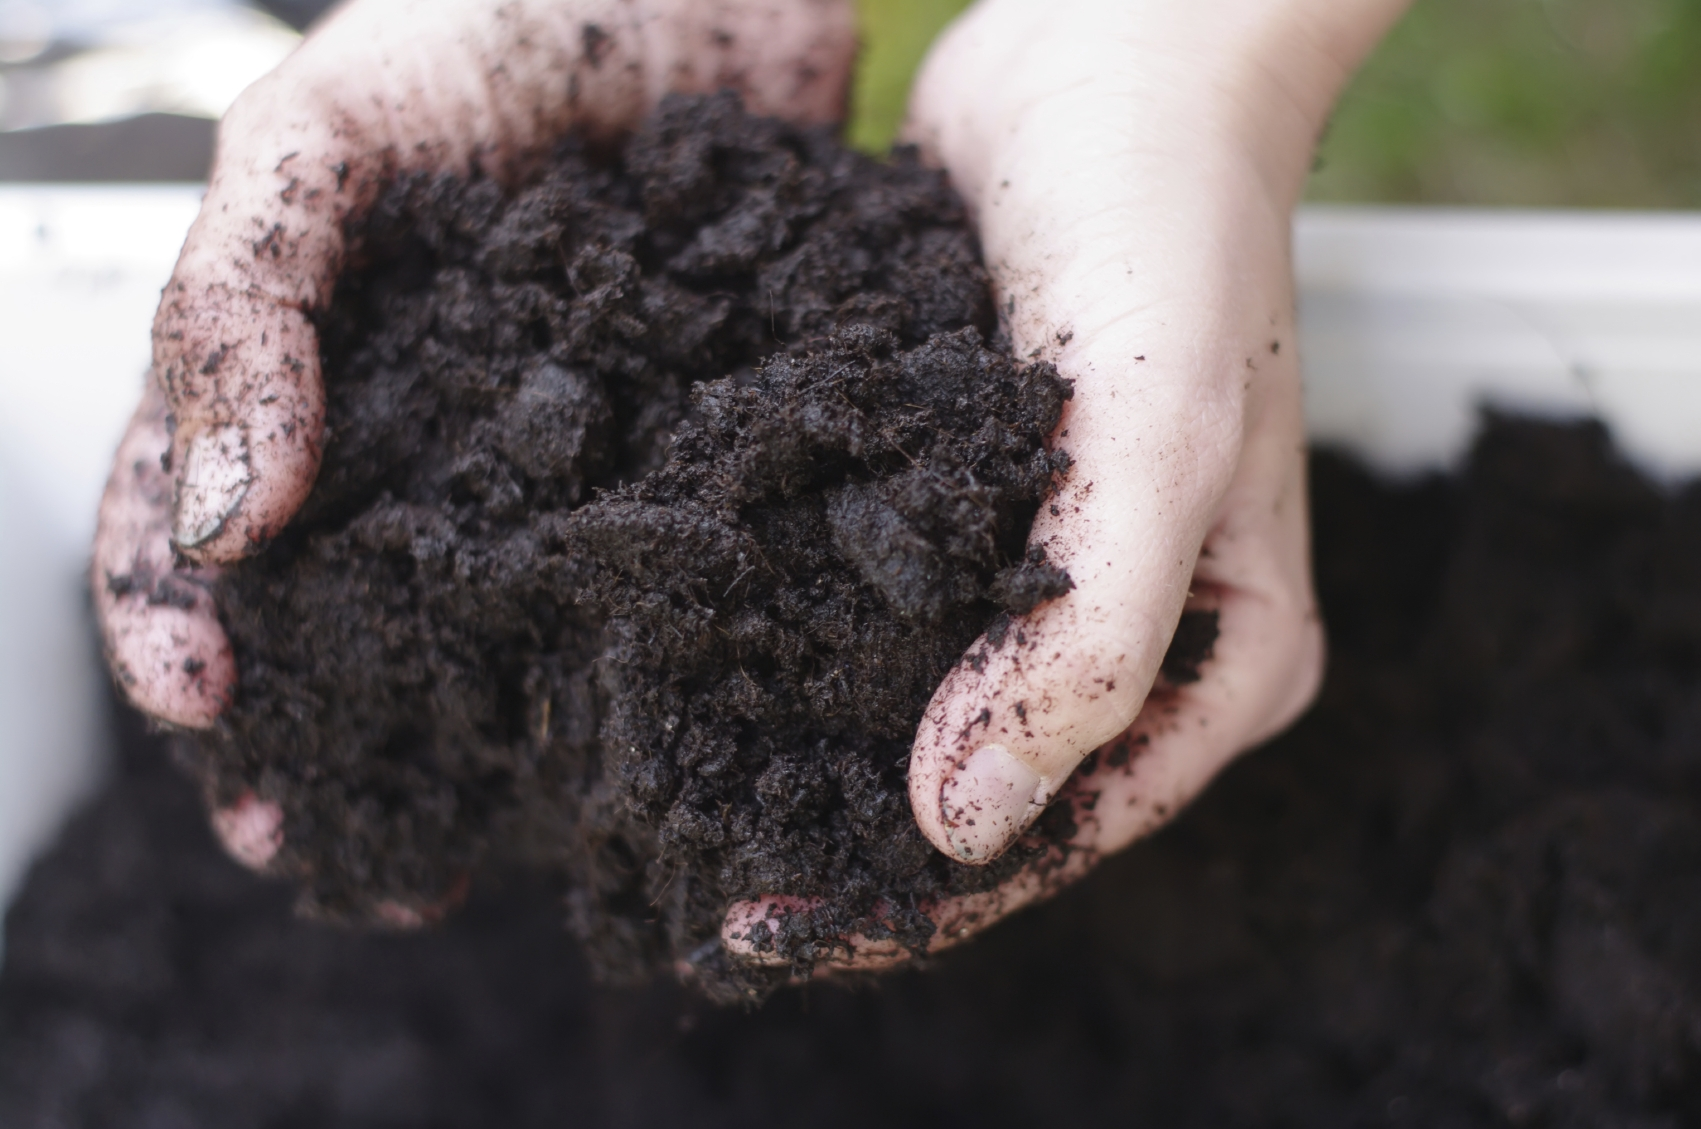 Clay Soil 6 Types of Soil: How to Make the Most of Your Garden Soil?